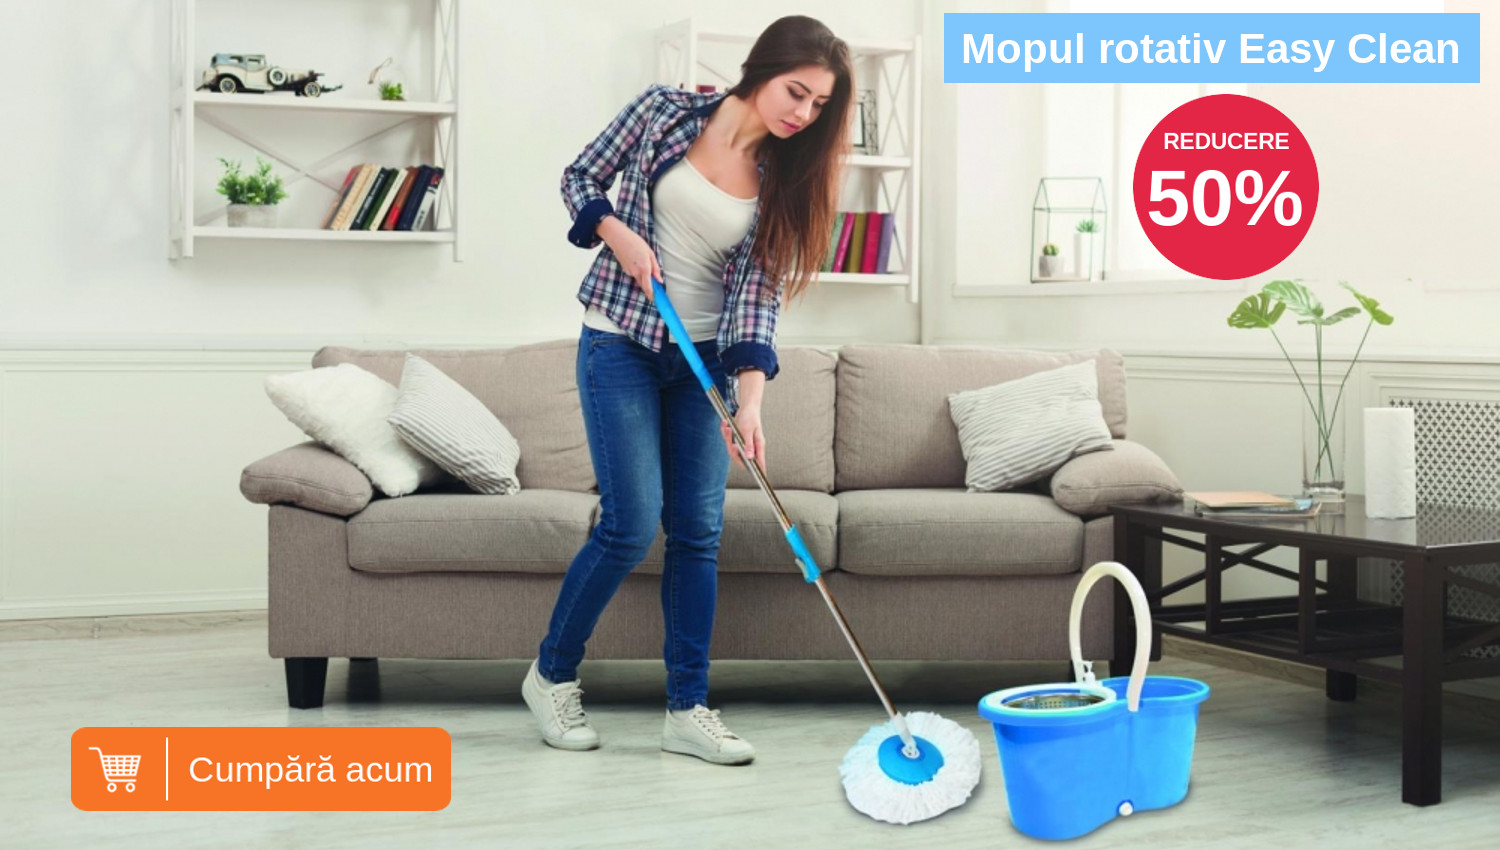 mop rotativ easy clean 360 promotie